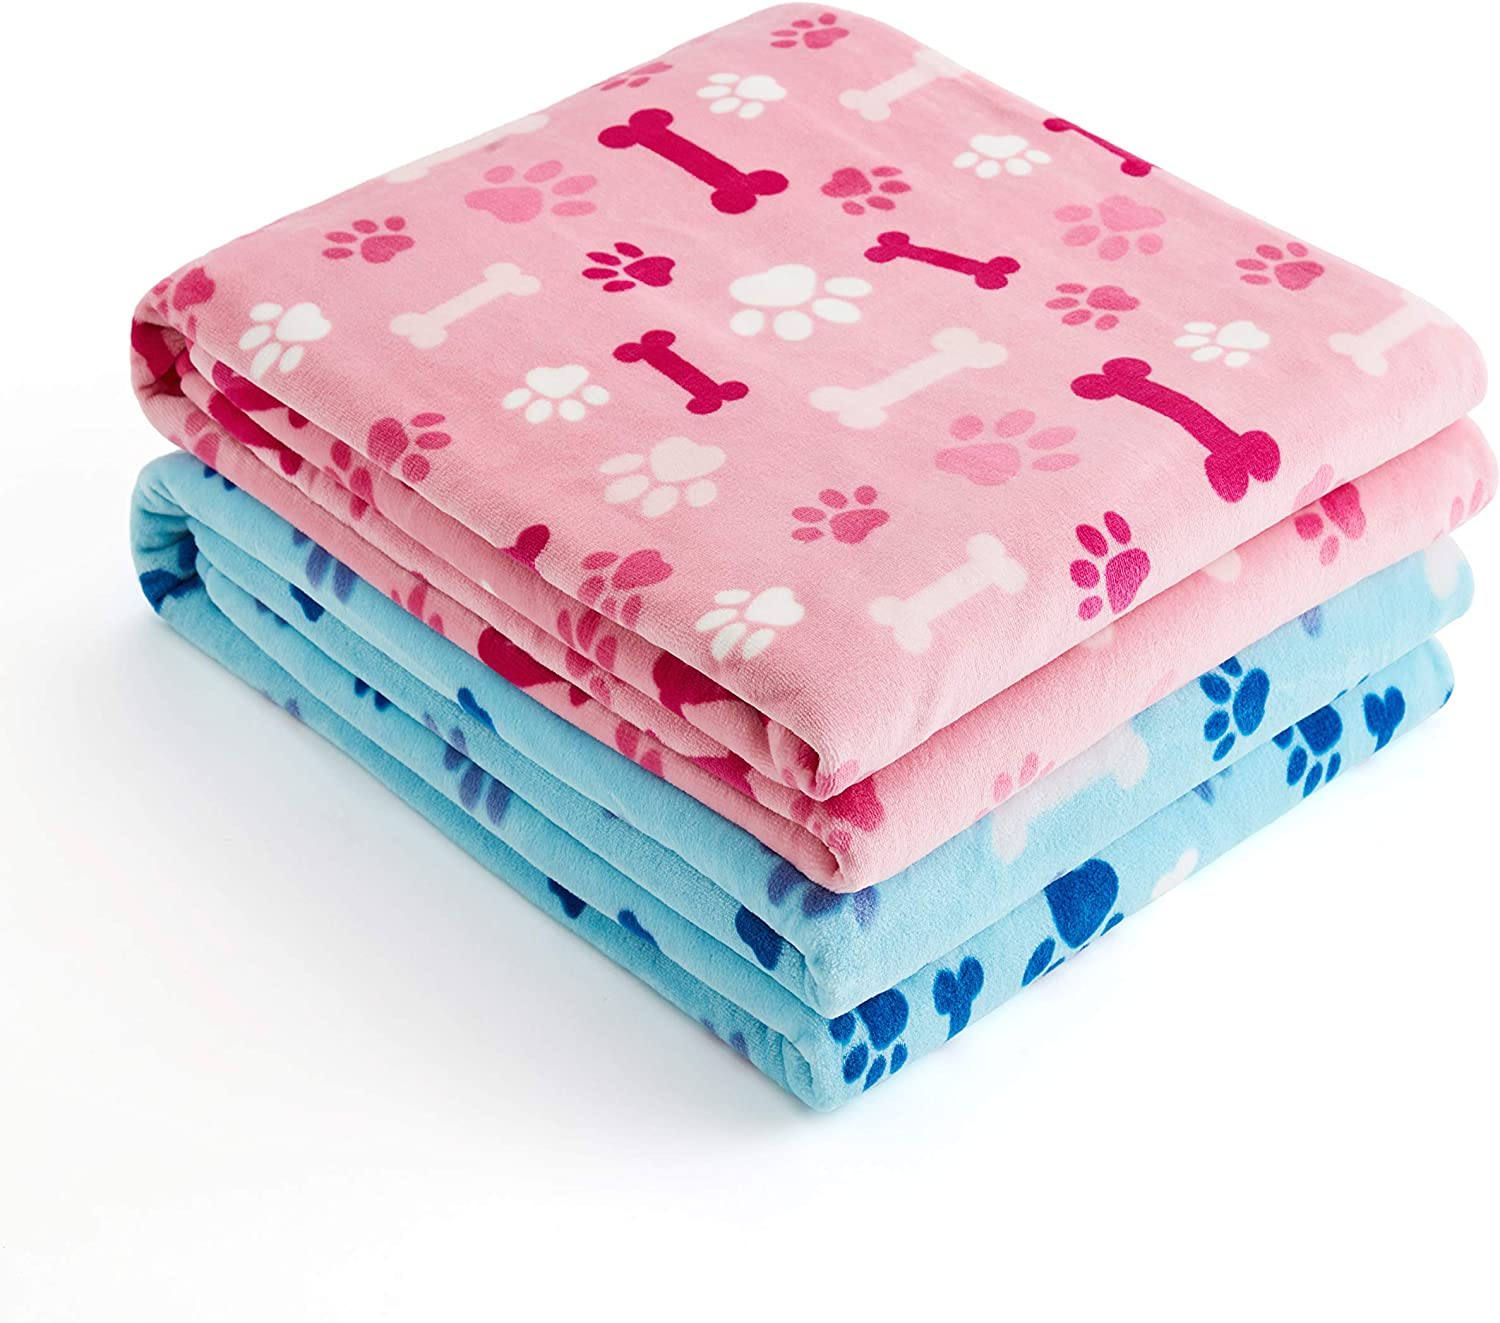 2 Pack Dog Cat Nap Fleece Blanket Throw, All Seasons Soothing Sky Tones Design, Machine Washable Pet Kitten Puppy Sleep Mat and Bed Cover, Pink and Blue, 32 x 24 Inches 81UO3mH5bRL